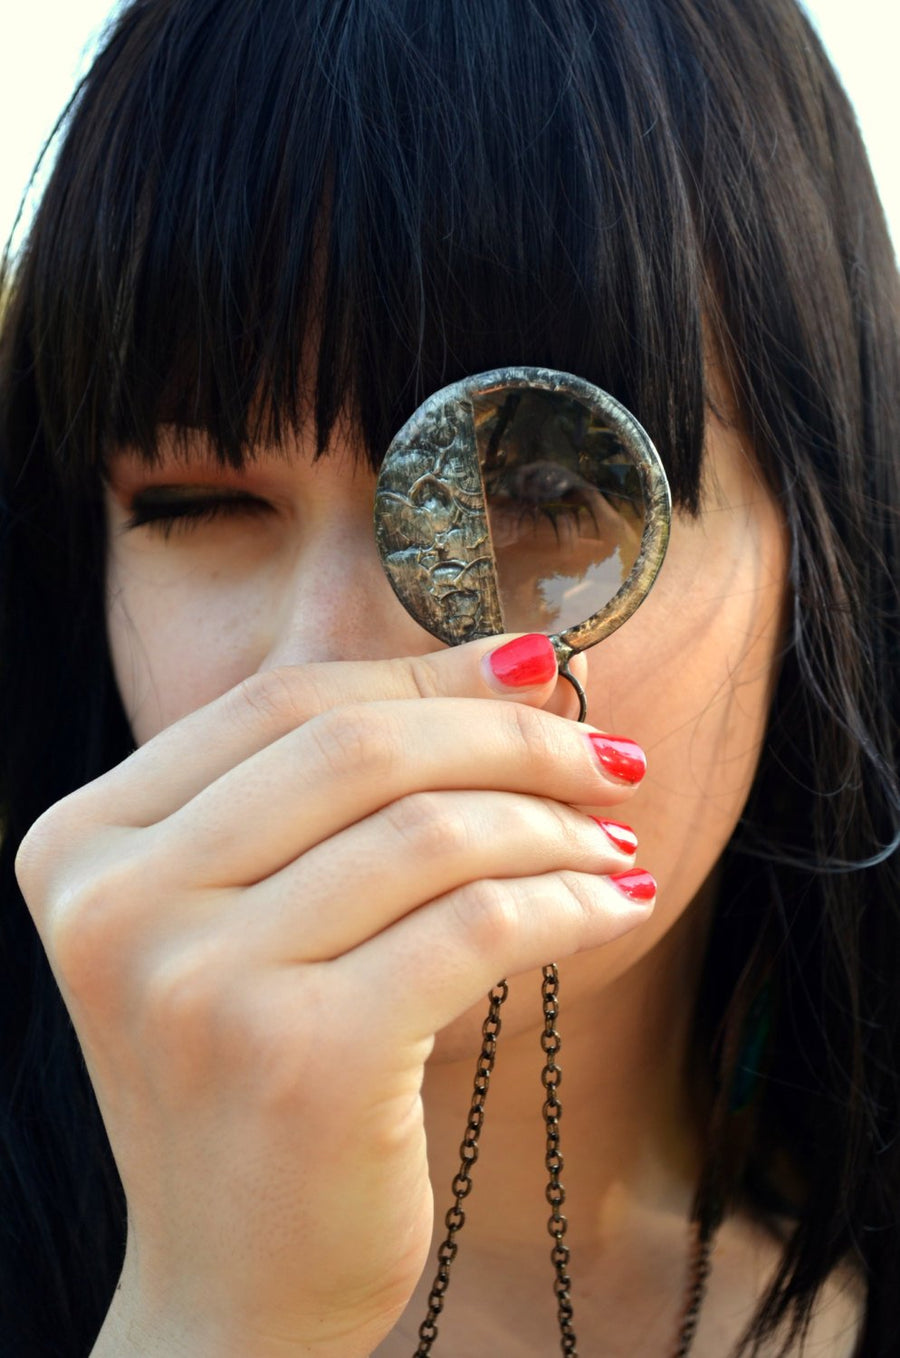 Model looking through Steampunk magnifier